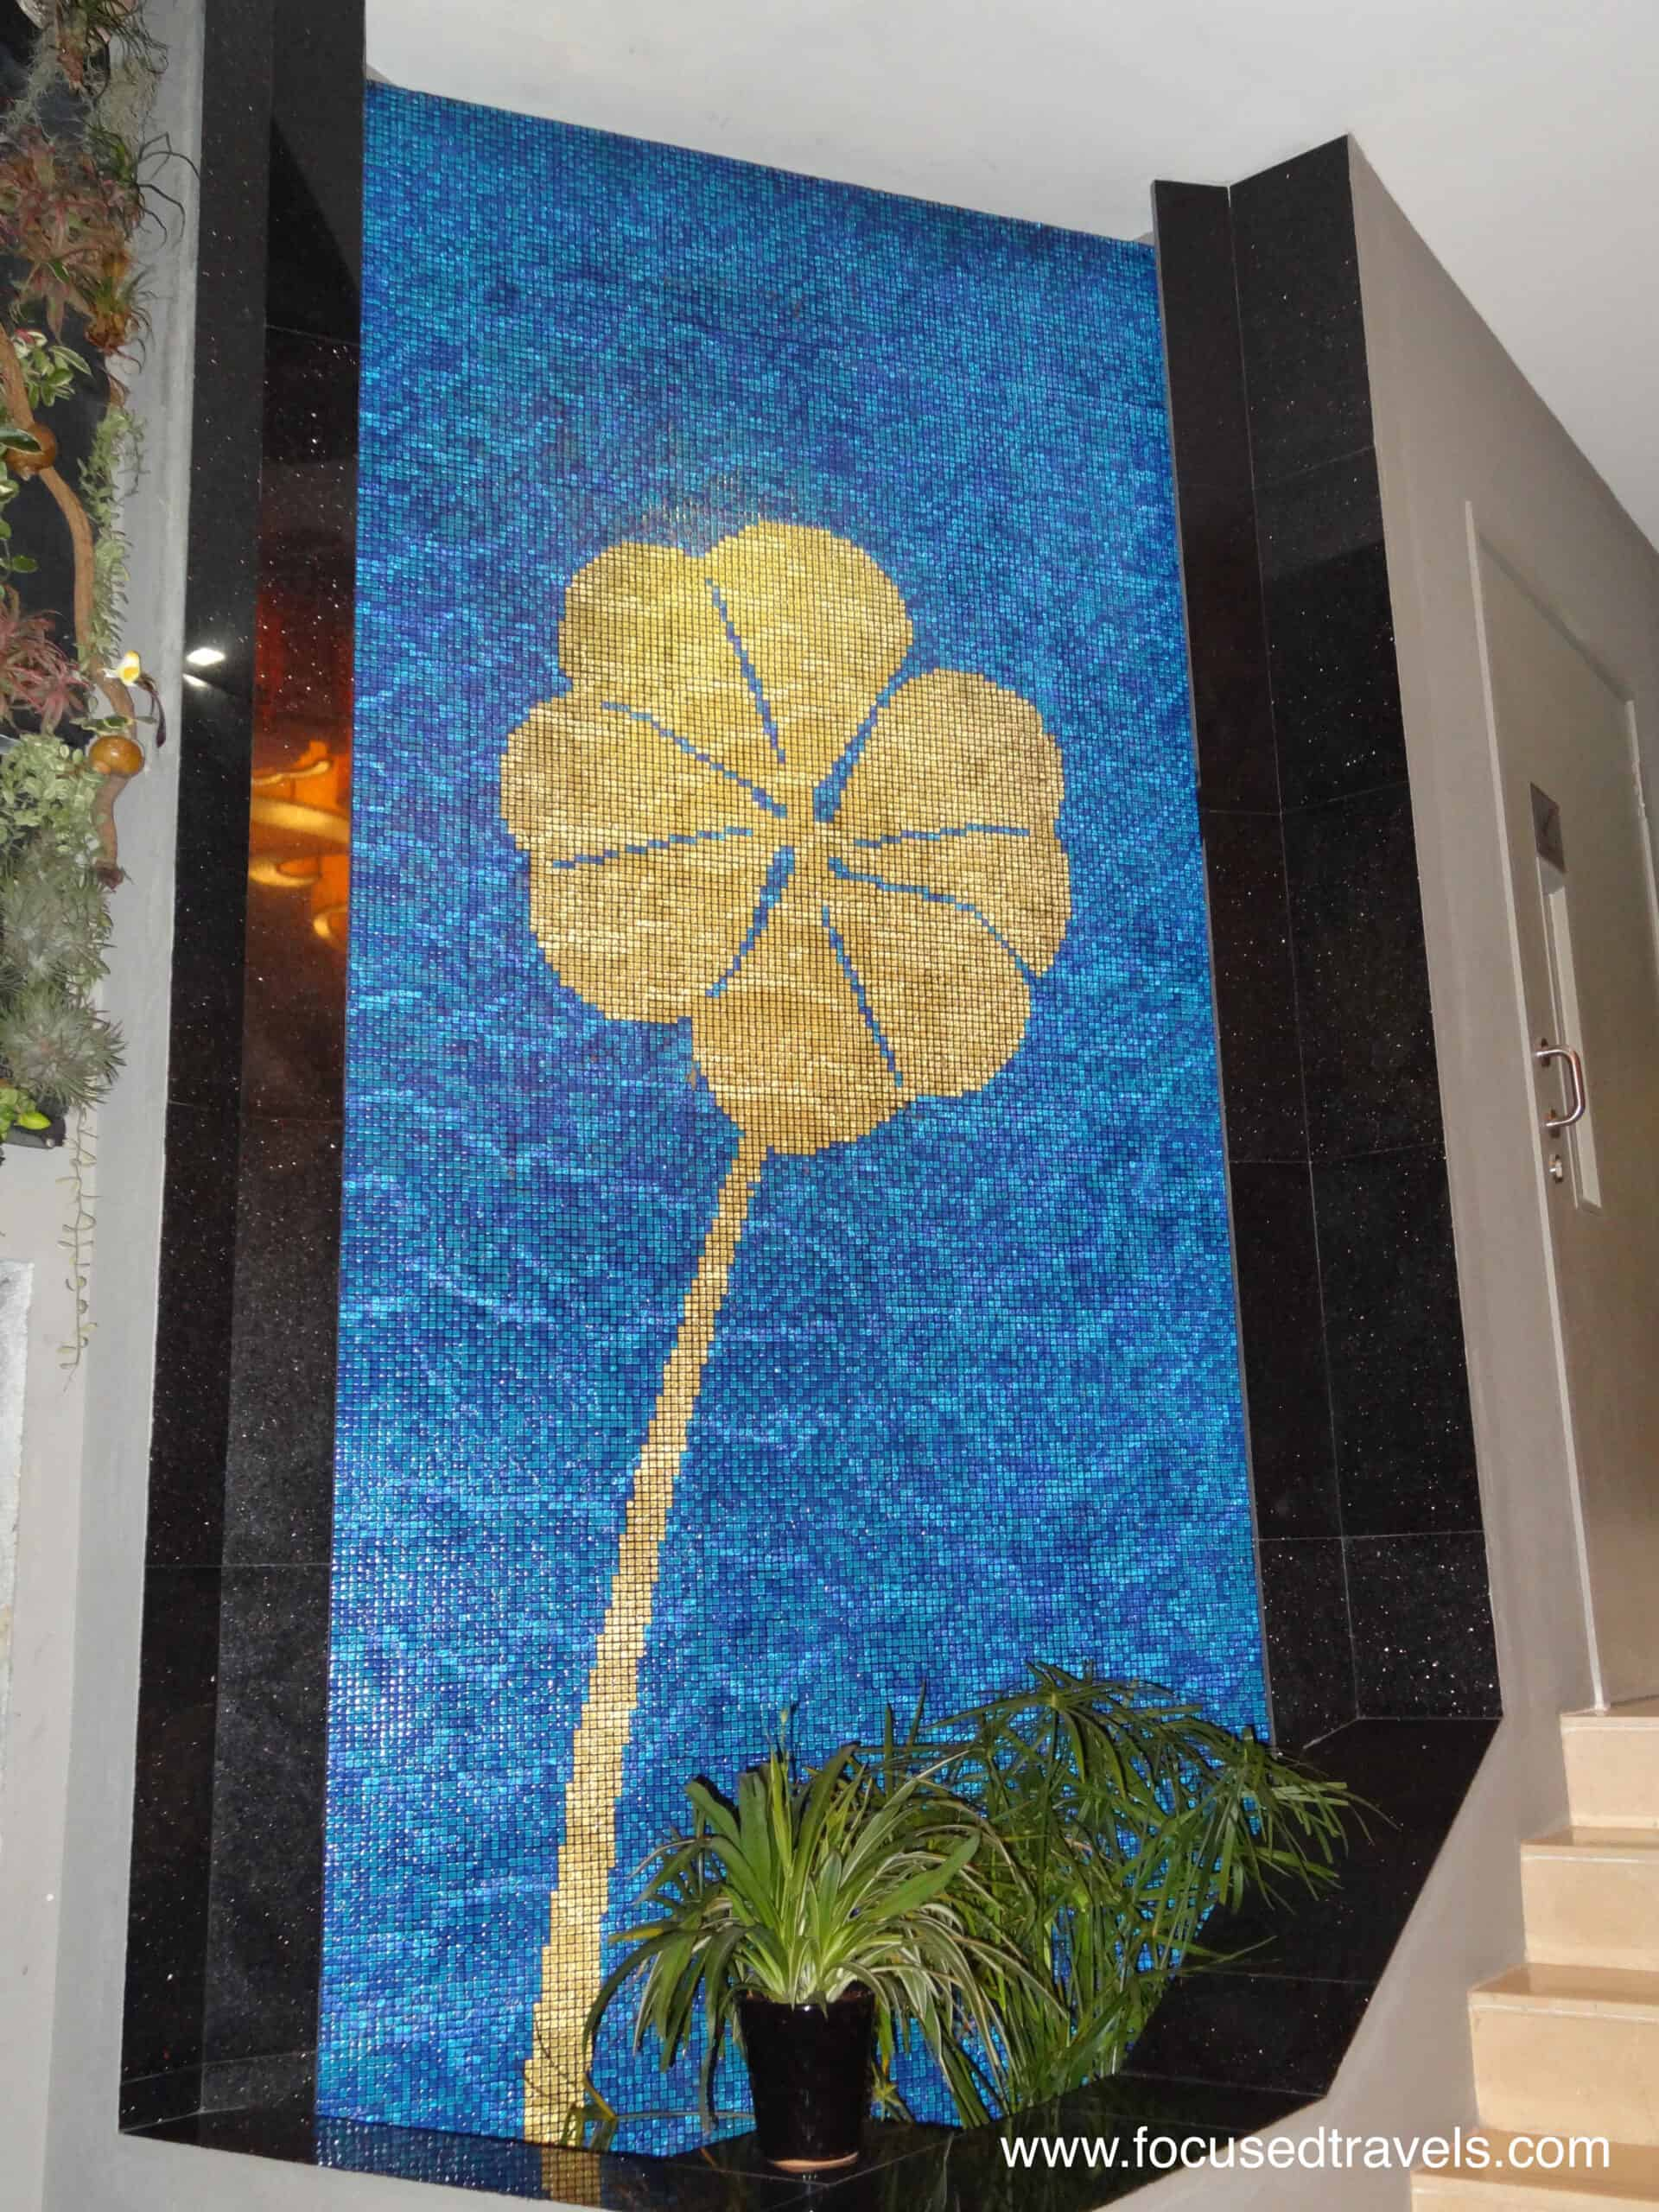 Hotel Clover - artwork next to the steps leading to reception